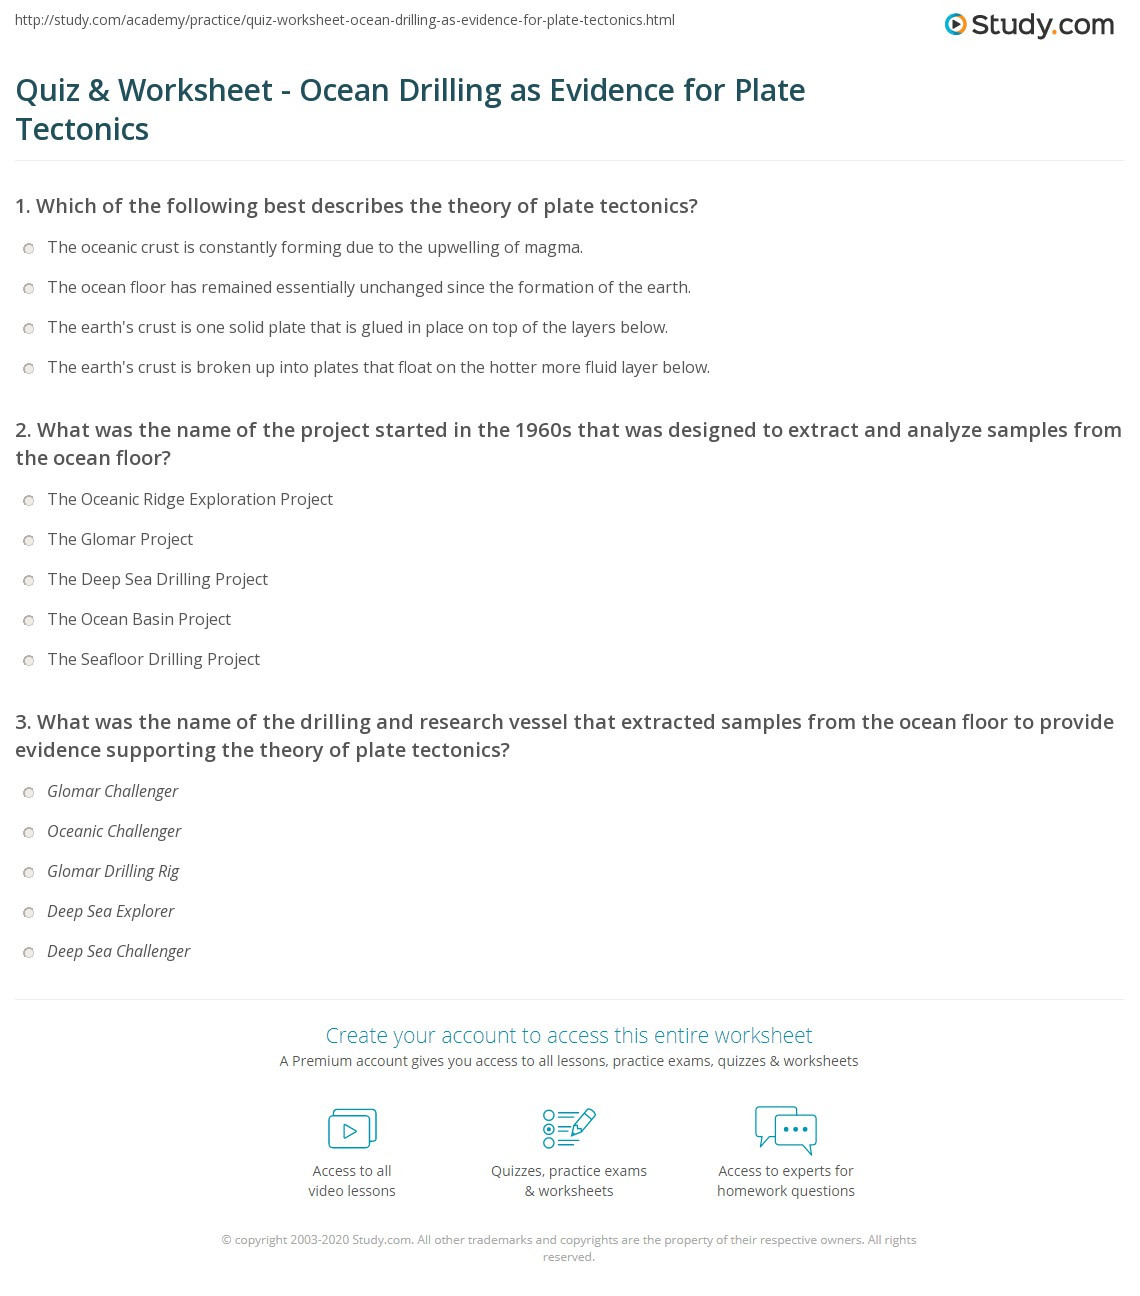 Plate Tectonic Worksheet Answers Quiz & Worksheet Ocean Drilling as Evidence for Plate